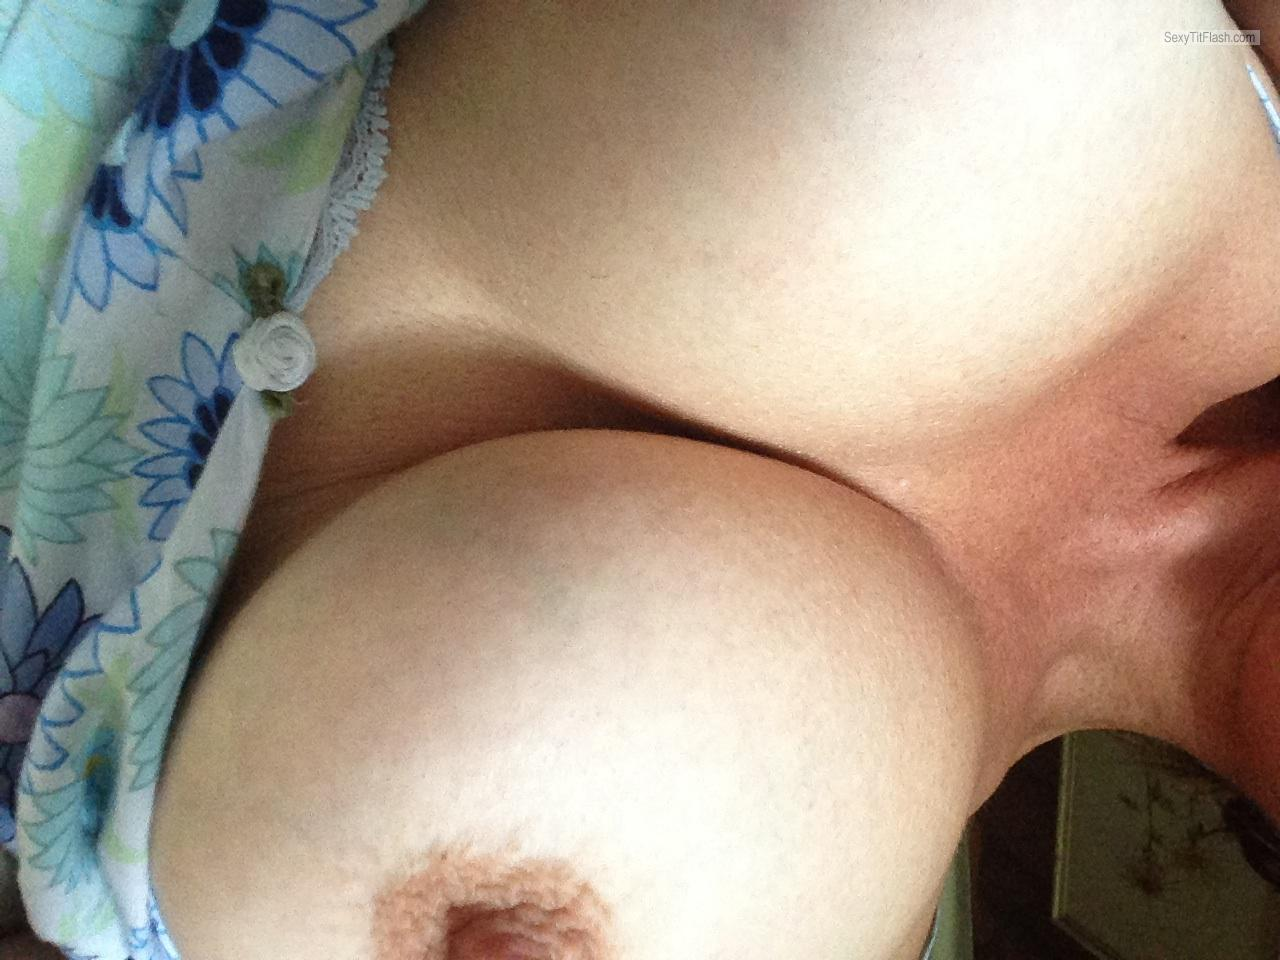 Tit Flash: Room Mate's Big Tits - Anna from United States